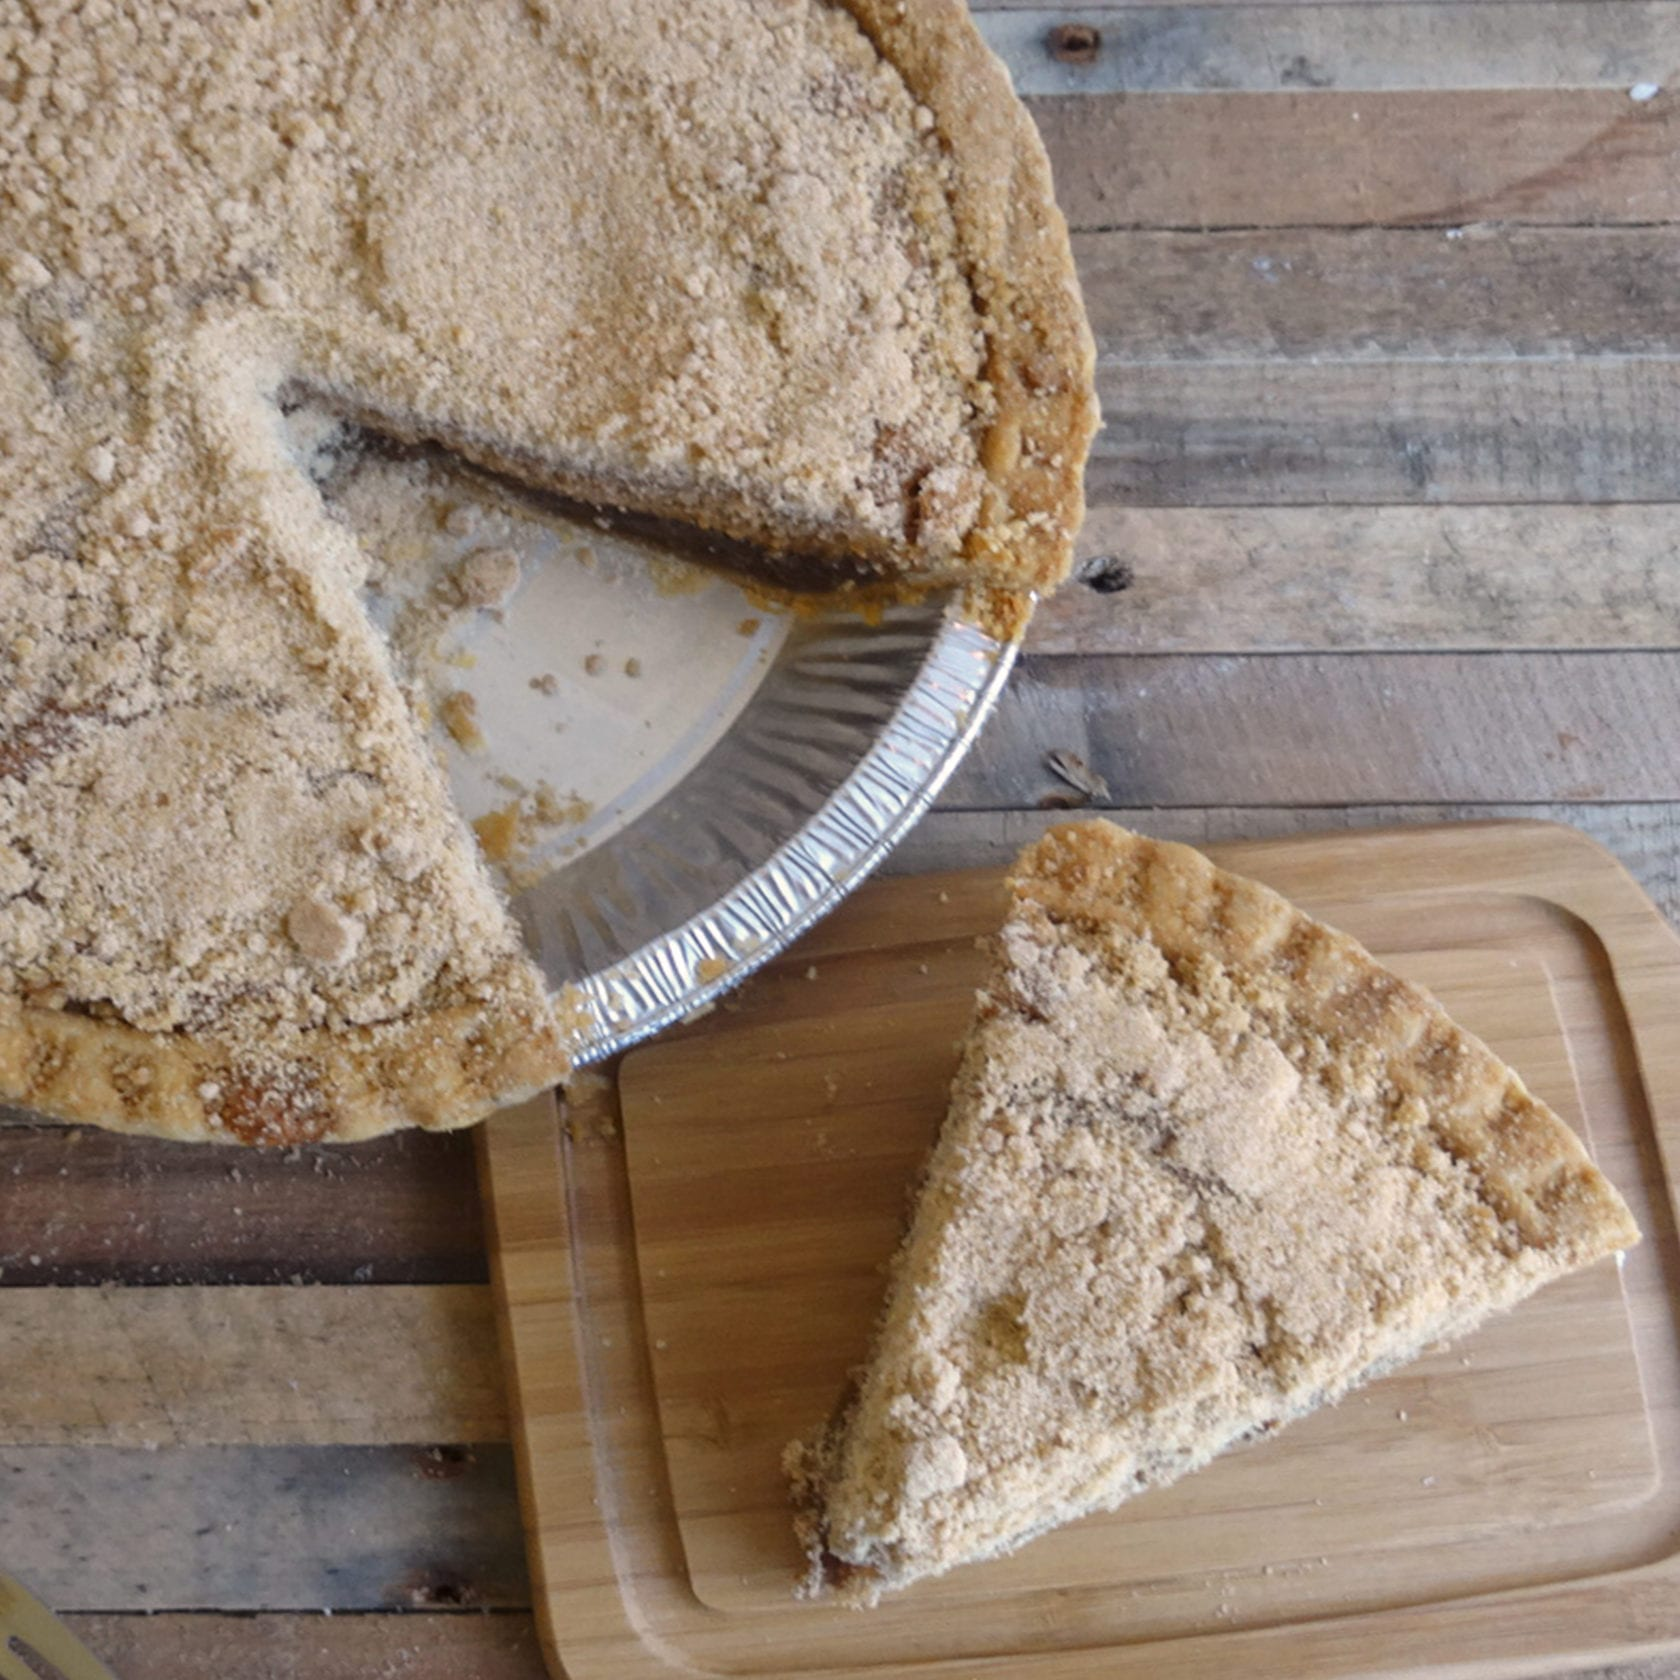 Slice of shoofly pie from Bird-in-Hand Bakery & Cafe